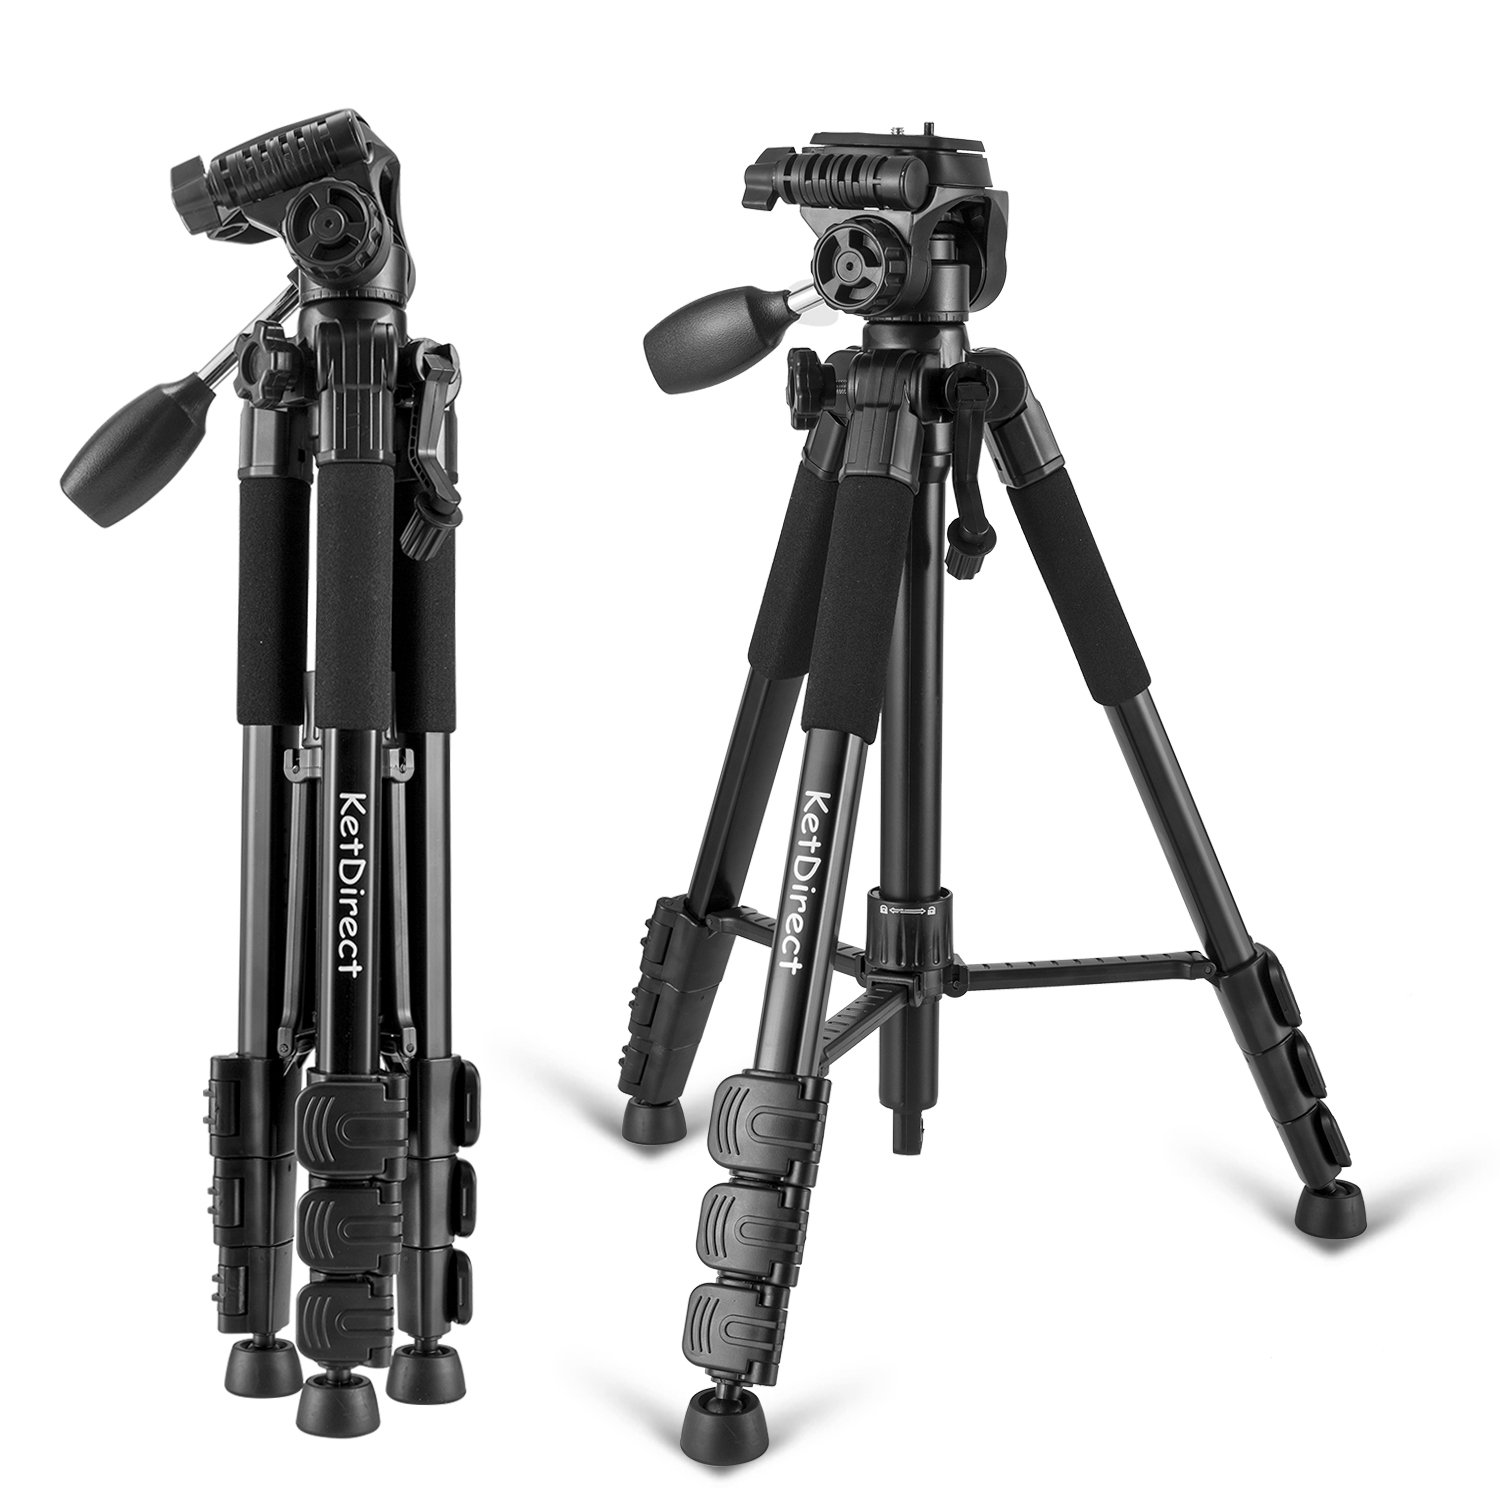 Top 20 Best Professional Tripods Reviews 2019-2020 - cover